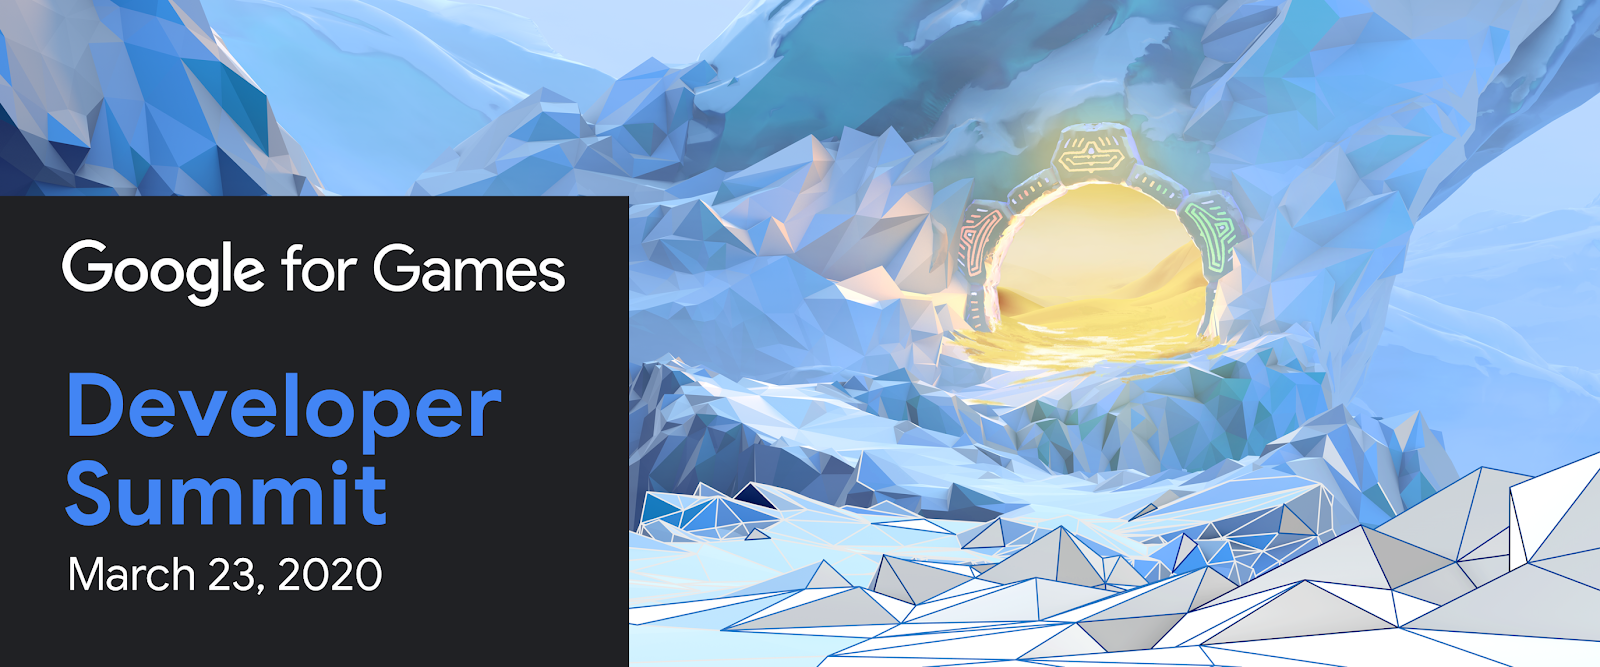 Google for Games Developer Summit banner. Video game background illustration